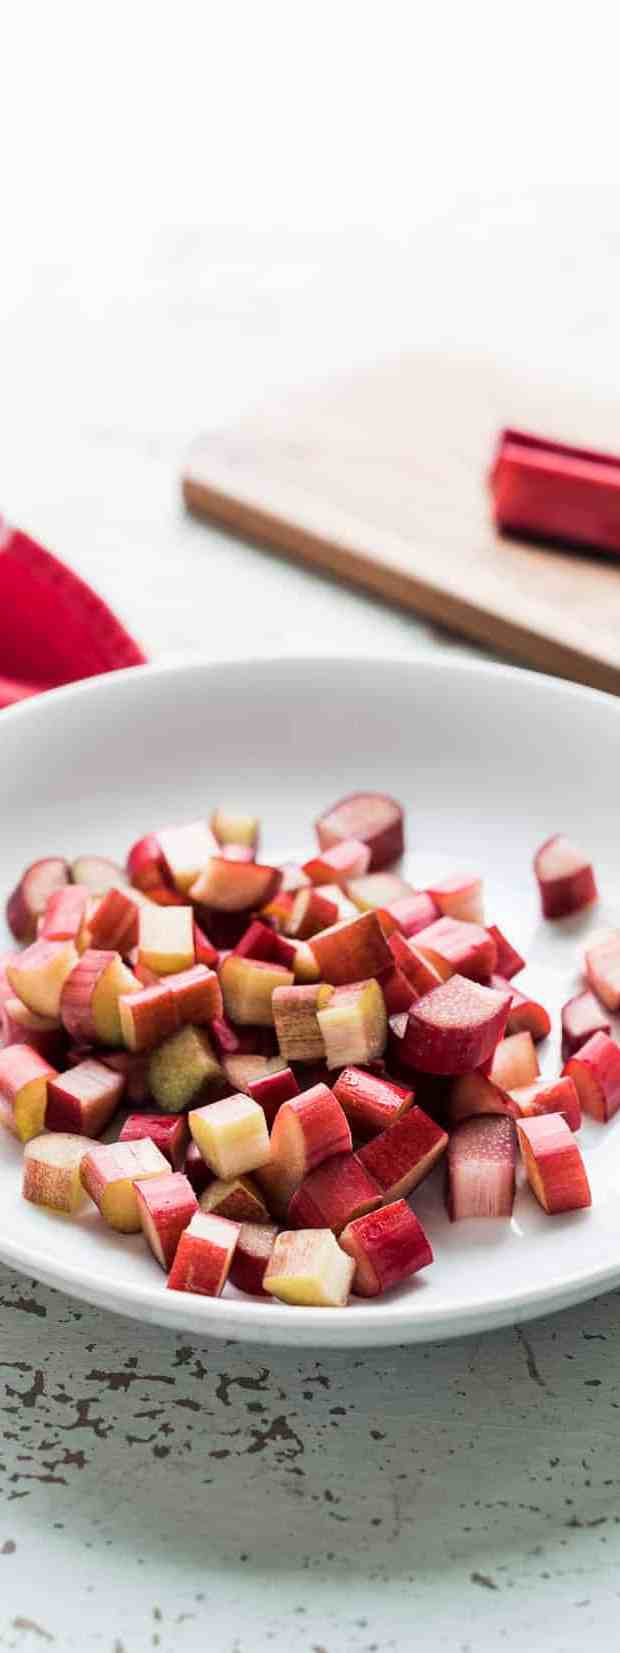 White plate filled with diced rhubarb cubes.